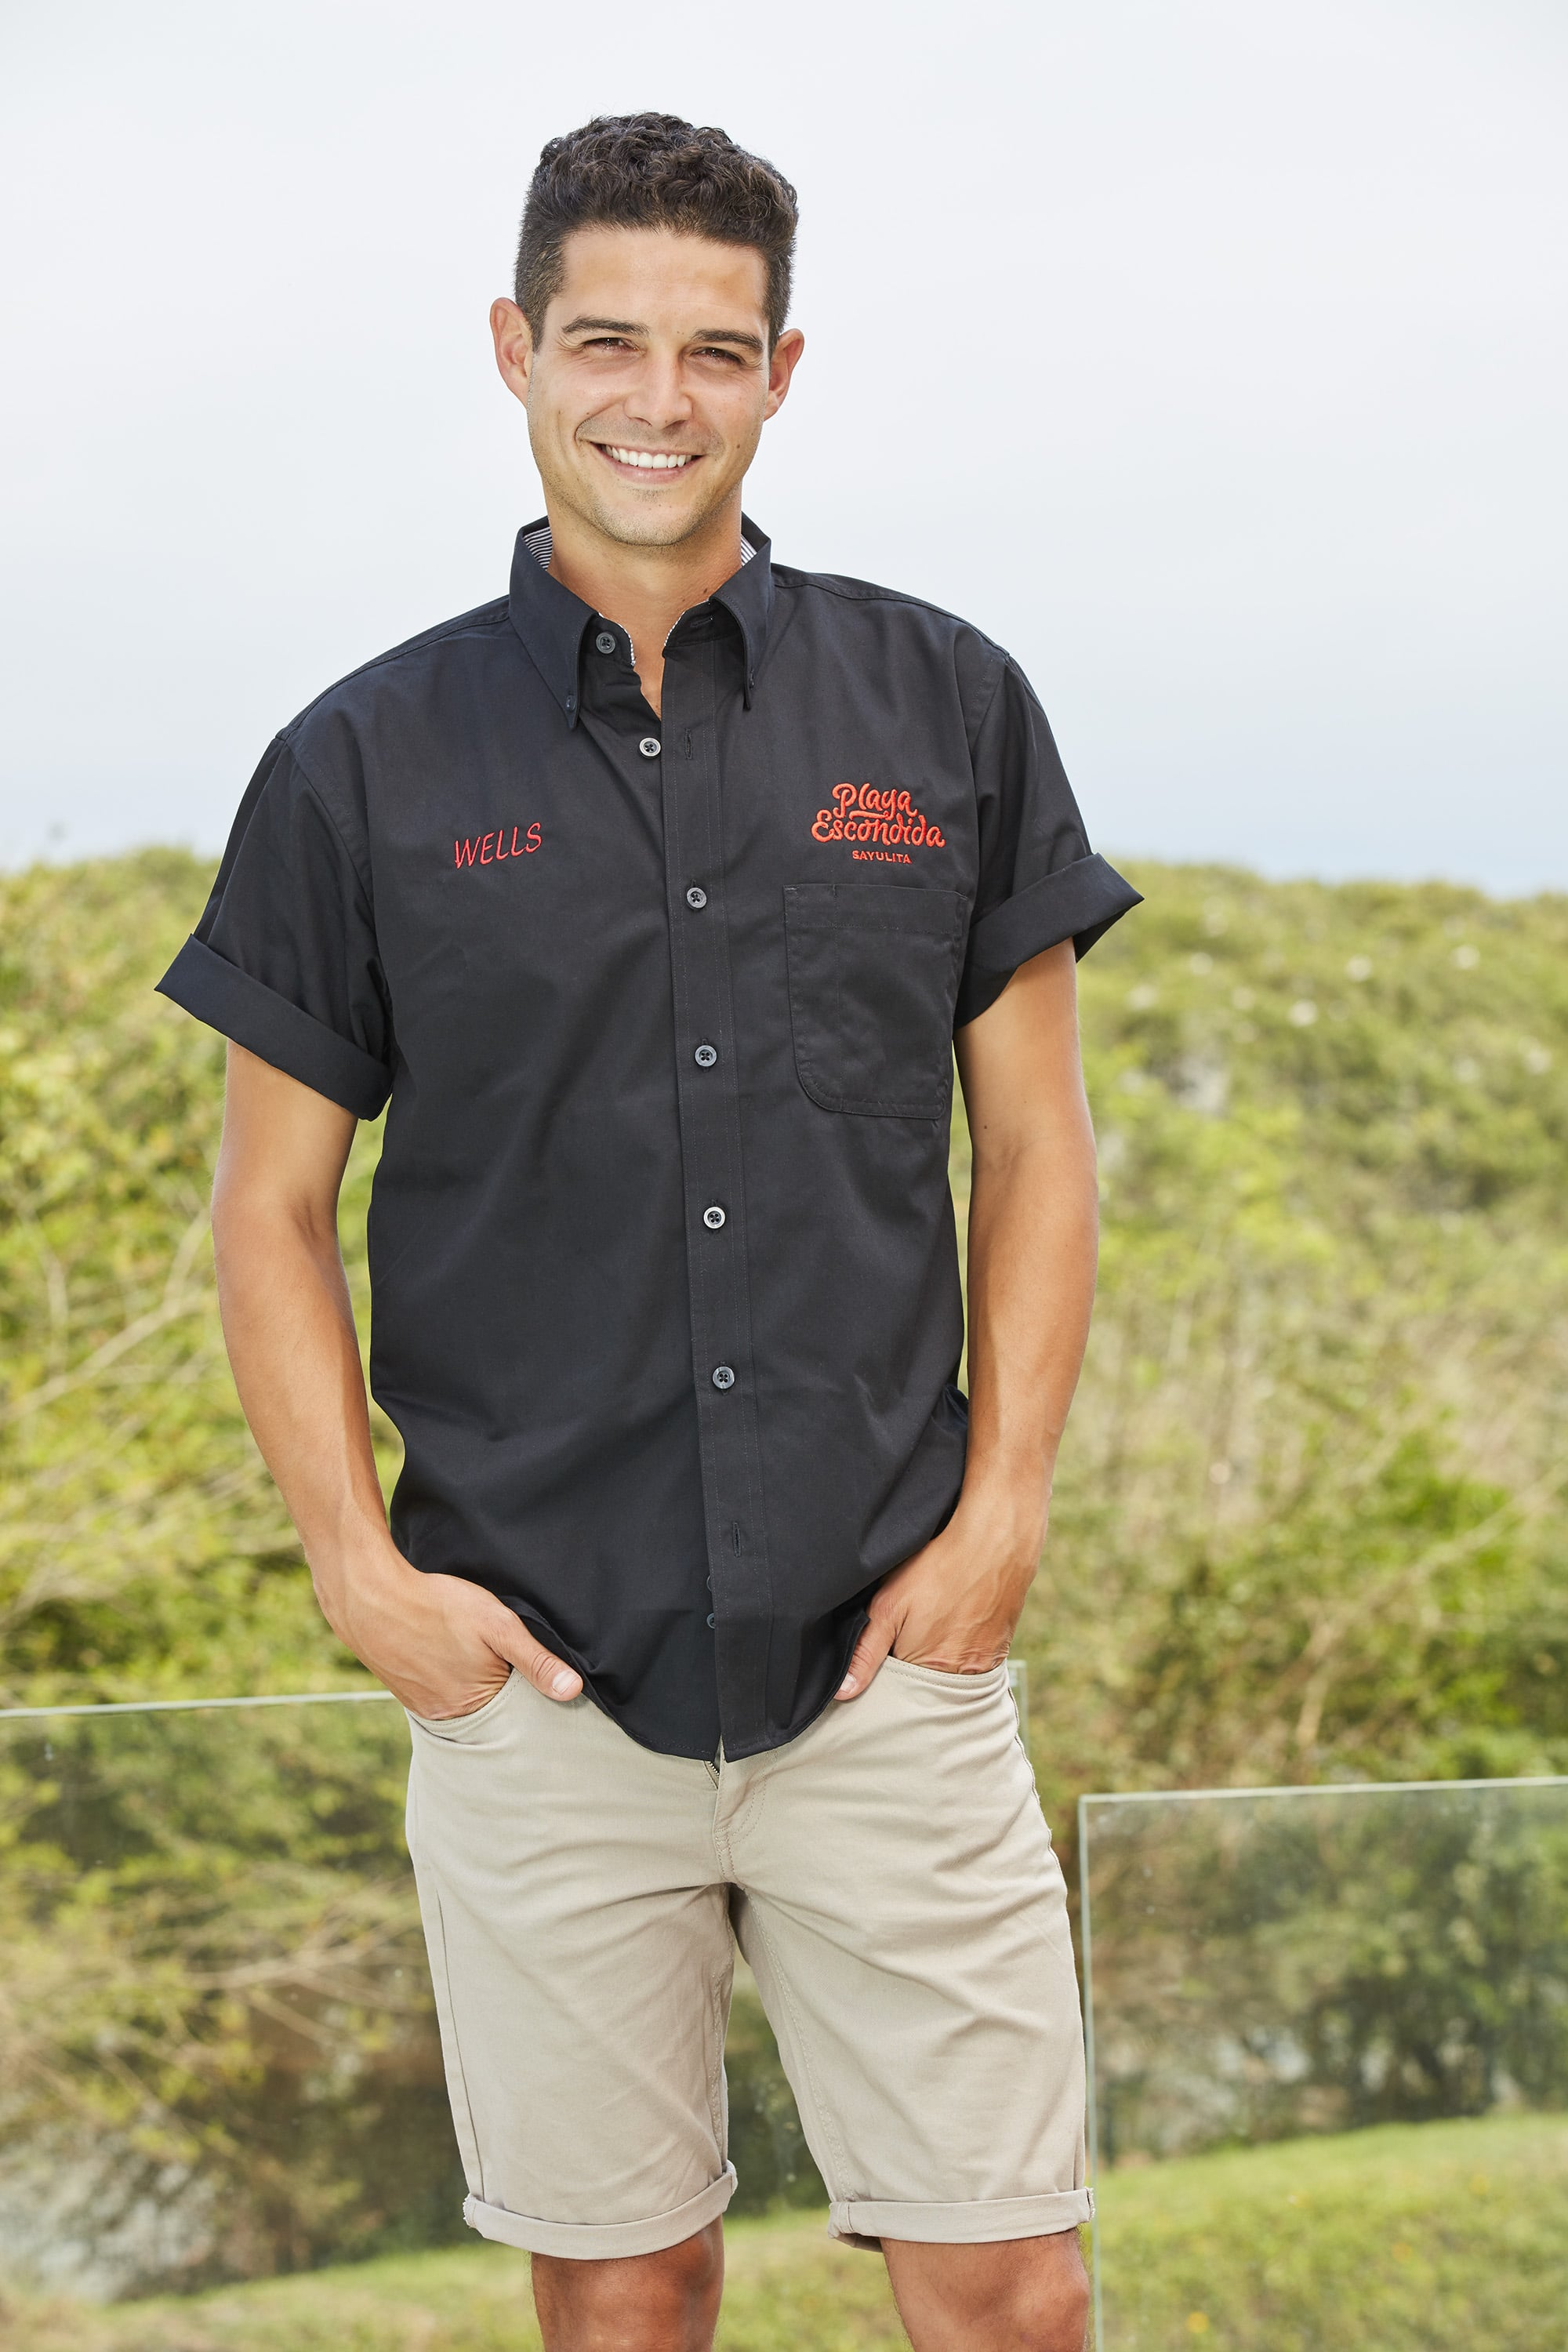 BACHELOR IN PARADISE - Breakout fan favorites from